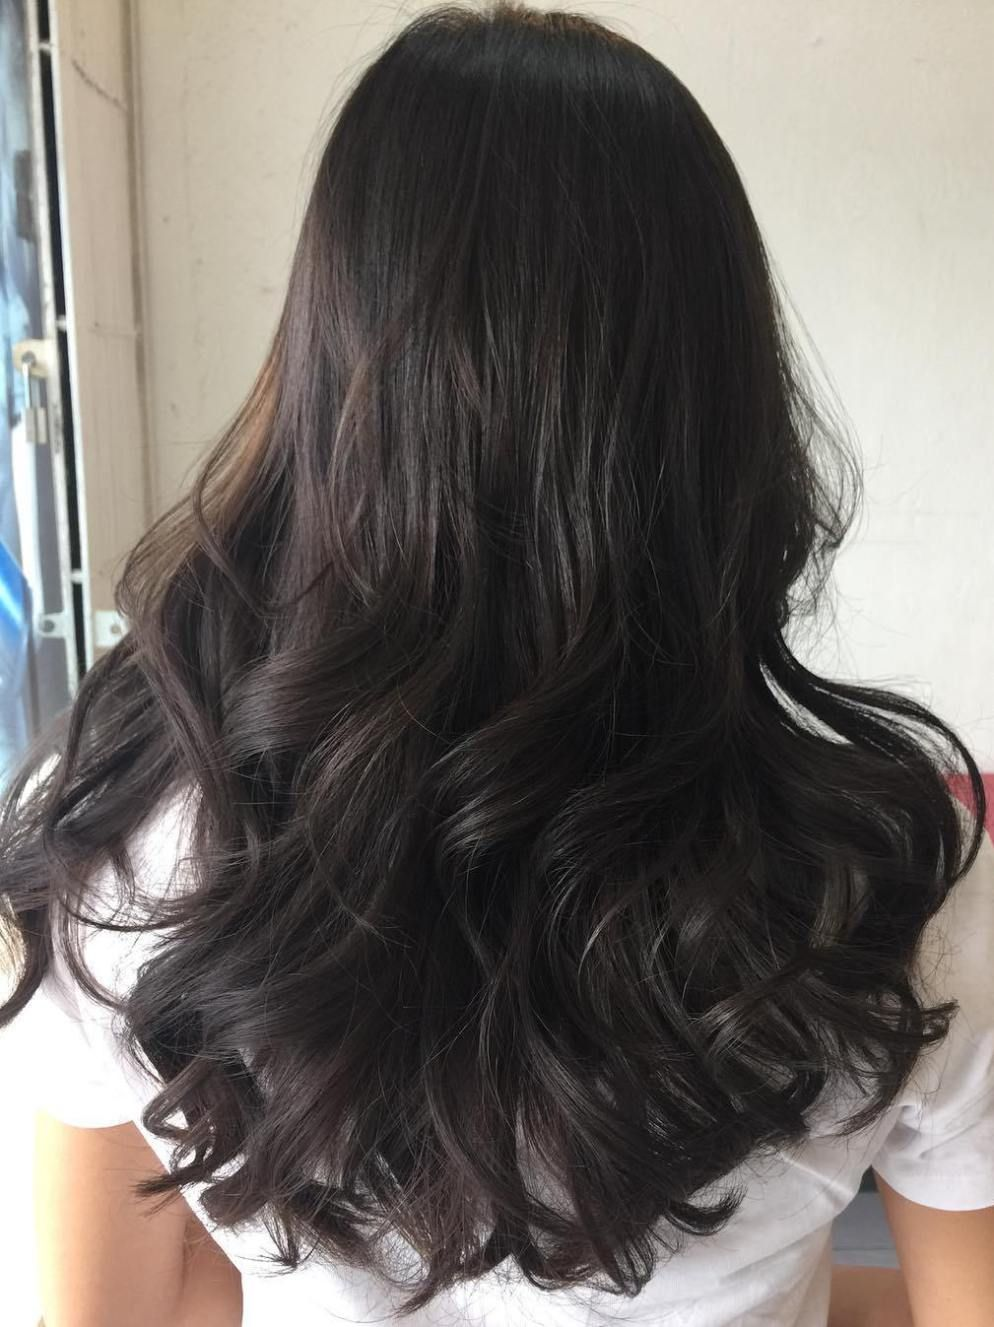 Watch 10 Gorgeous Long Wavy Perm Hairstyles video